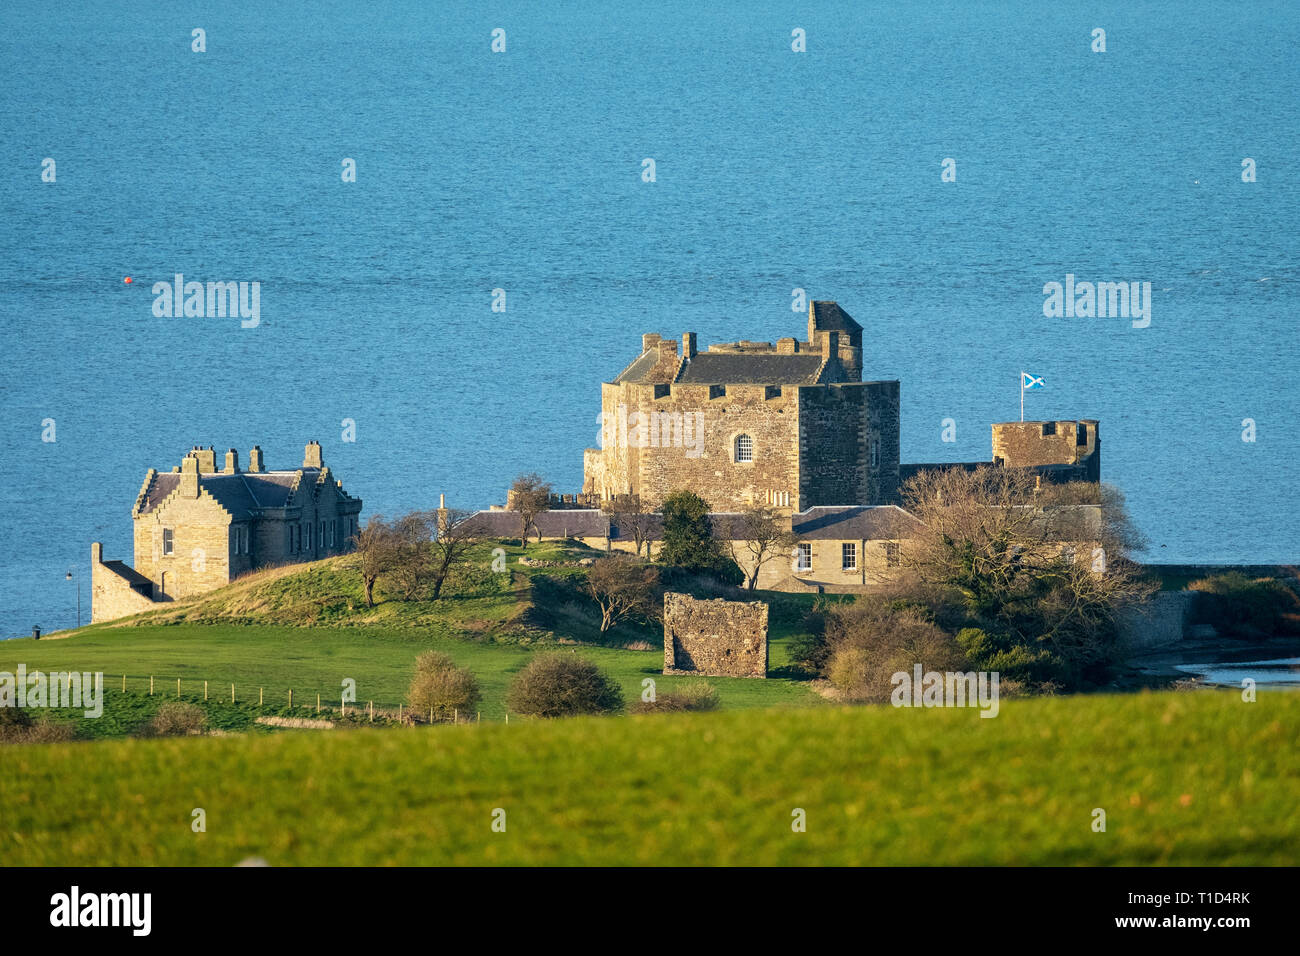 Blackness Castle on the shore of the Firth of Forth near Linlithgow. It has been used as a film location and most recently in the Outlander tv series. Stock Photo